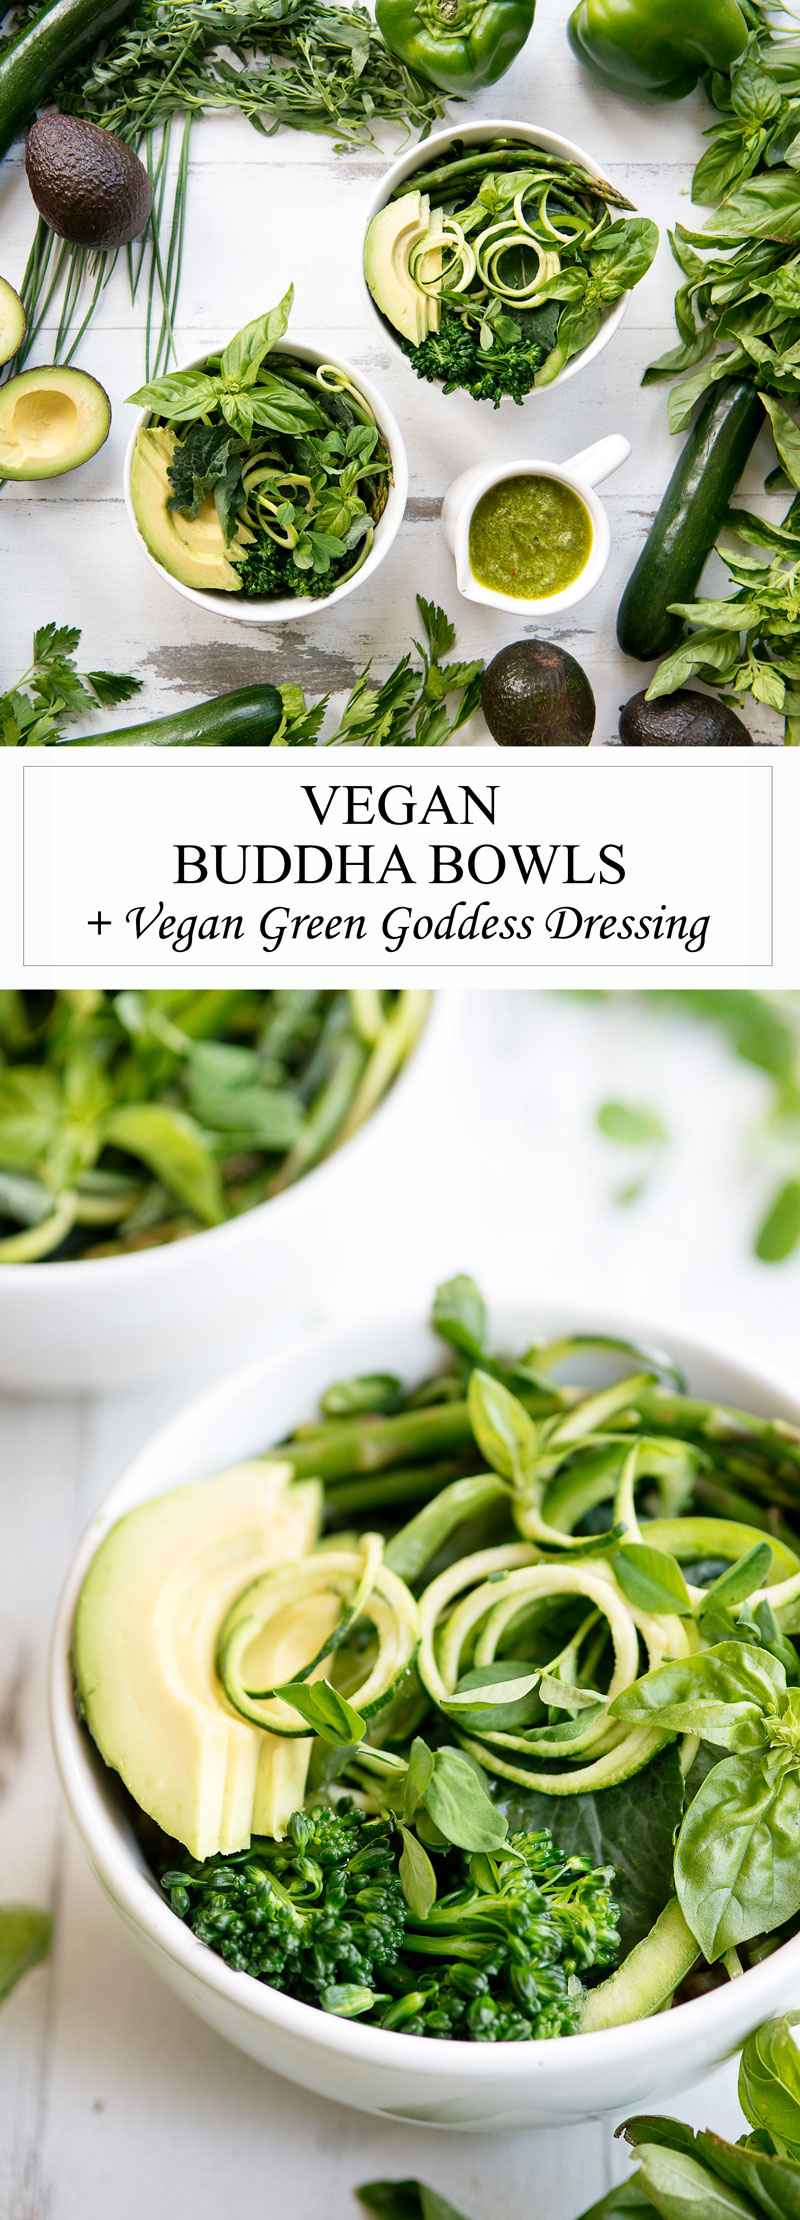 Vegan Buddha Bowls Recipe with Veggies & Brown Rice